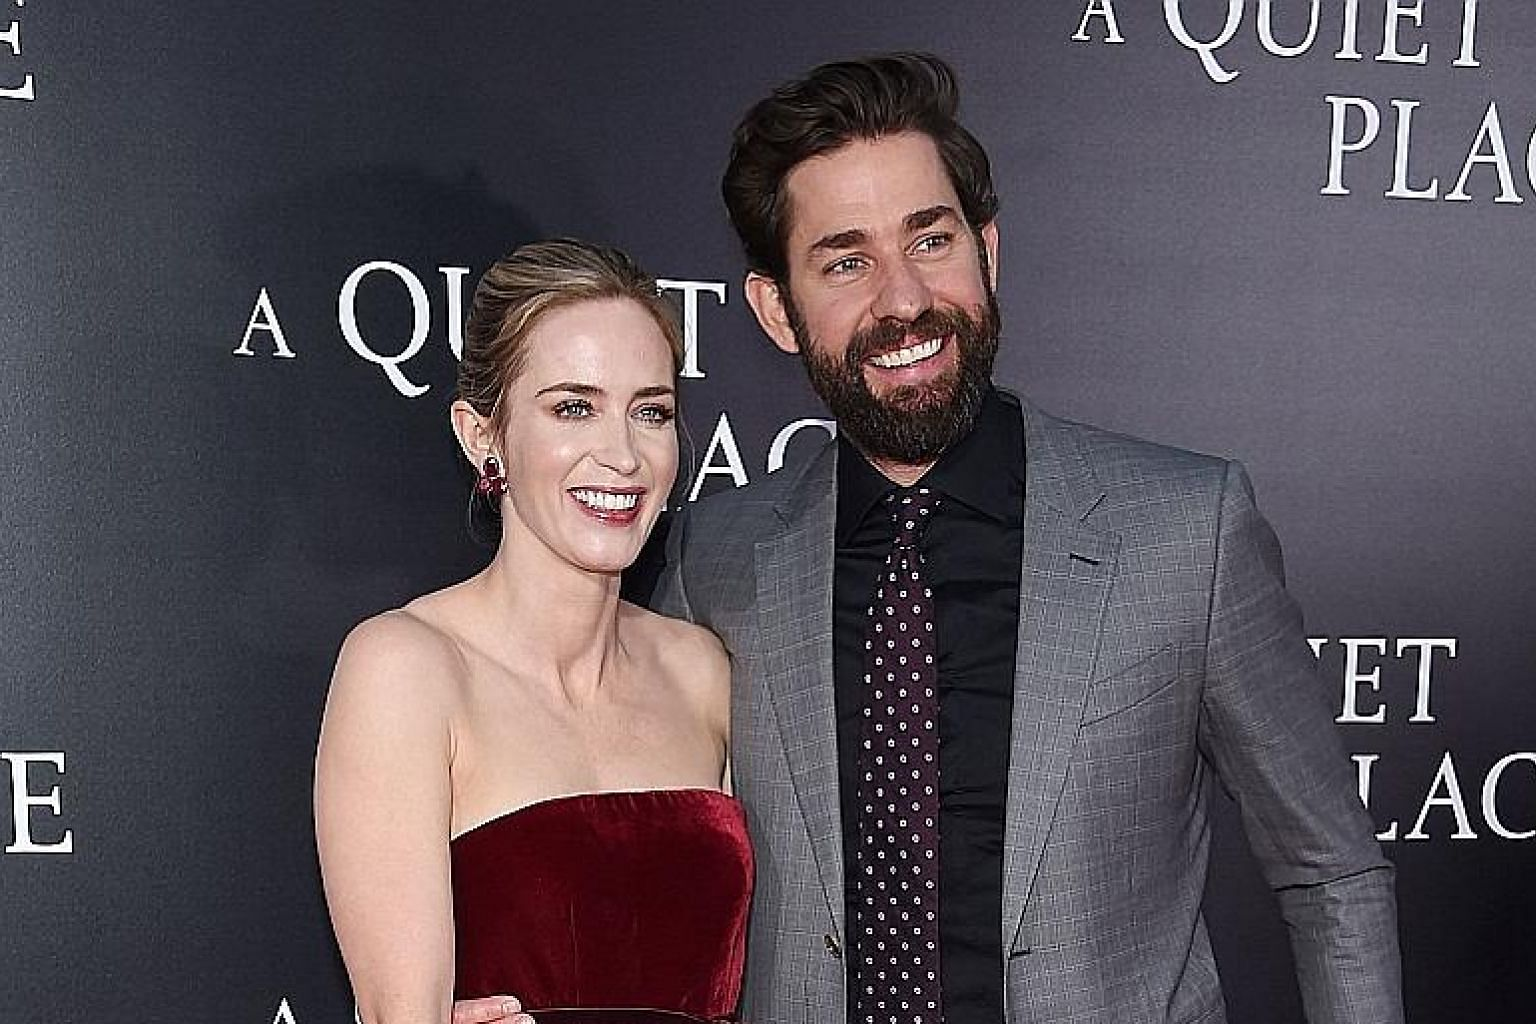 A Quiet Place is the first on-screen collaboration for John Krasinski and Emily Blunt.